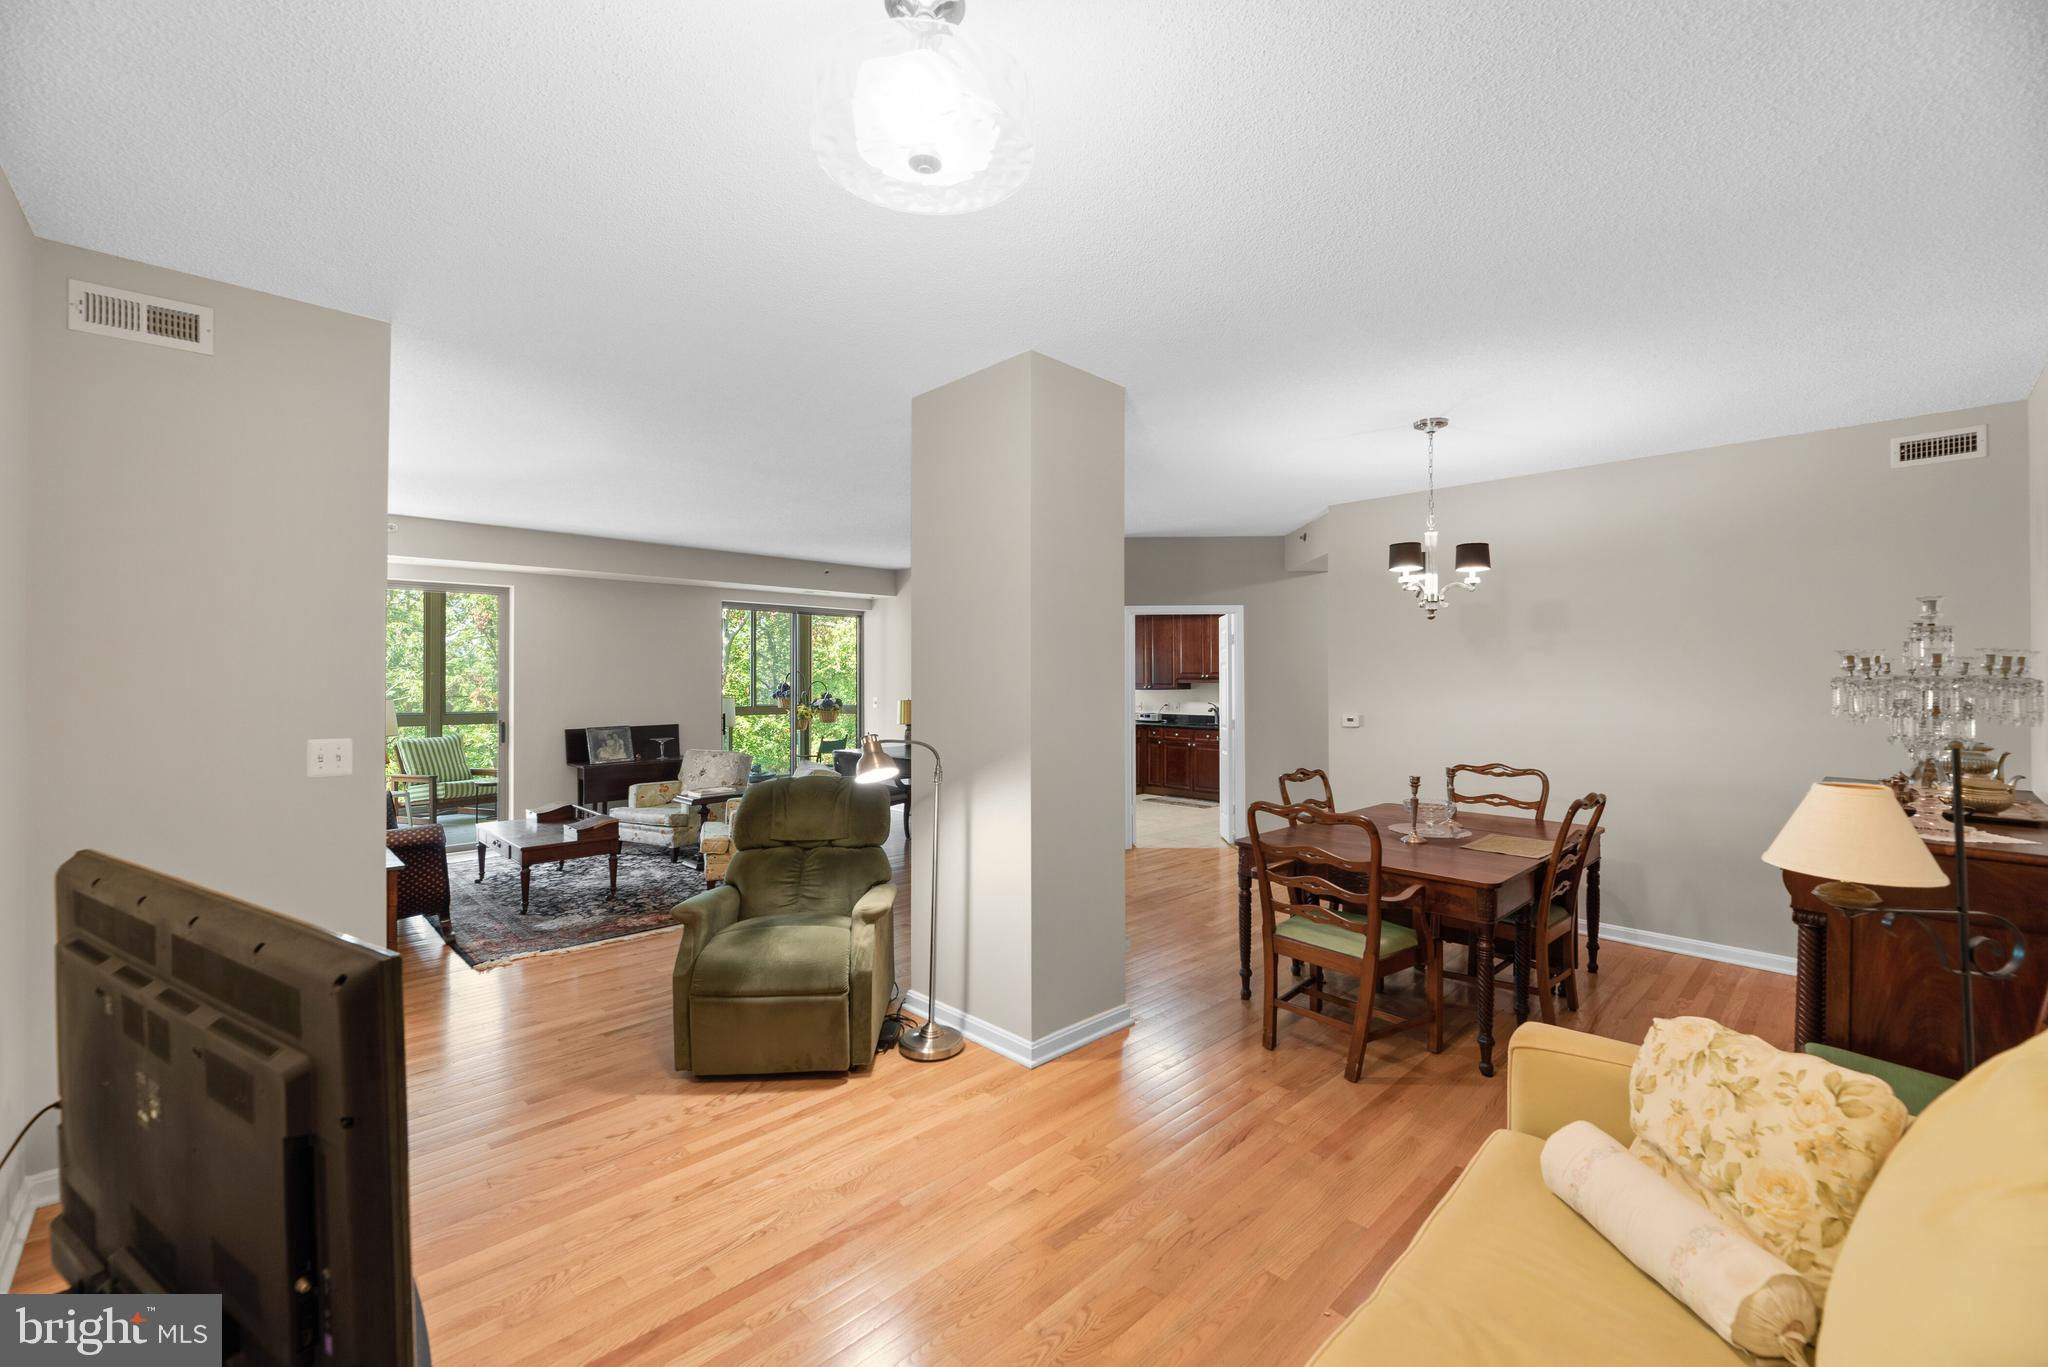 Another Property Sold - 940 Astern Way #407, Annapolis, MD 21401